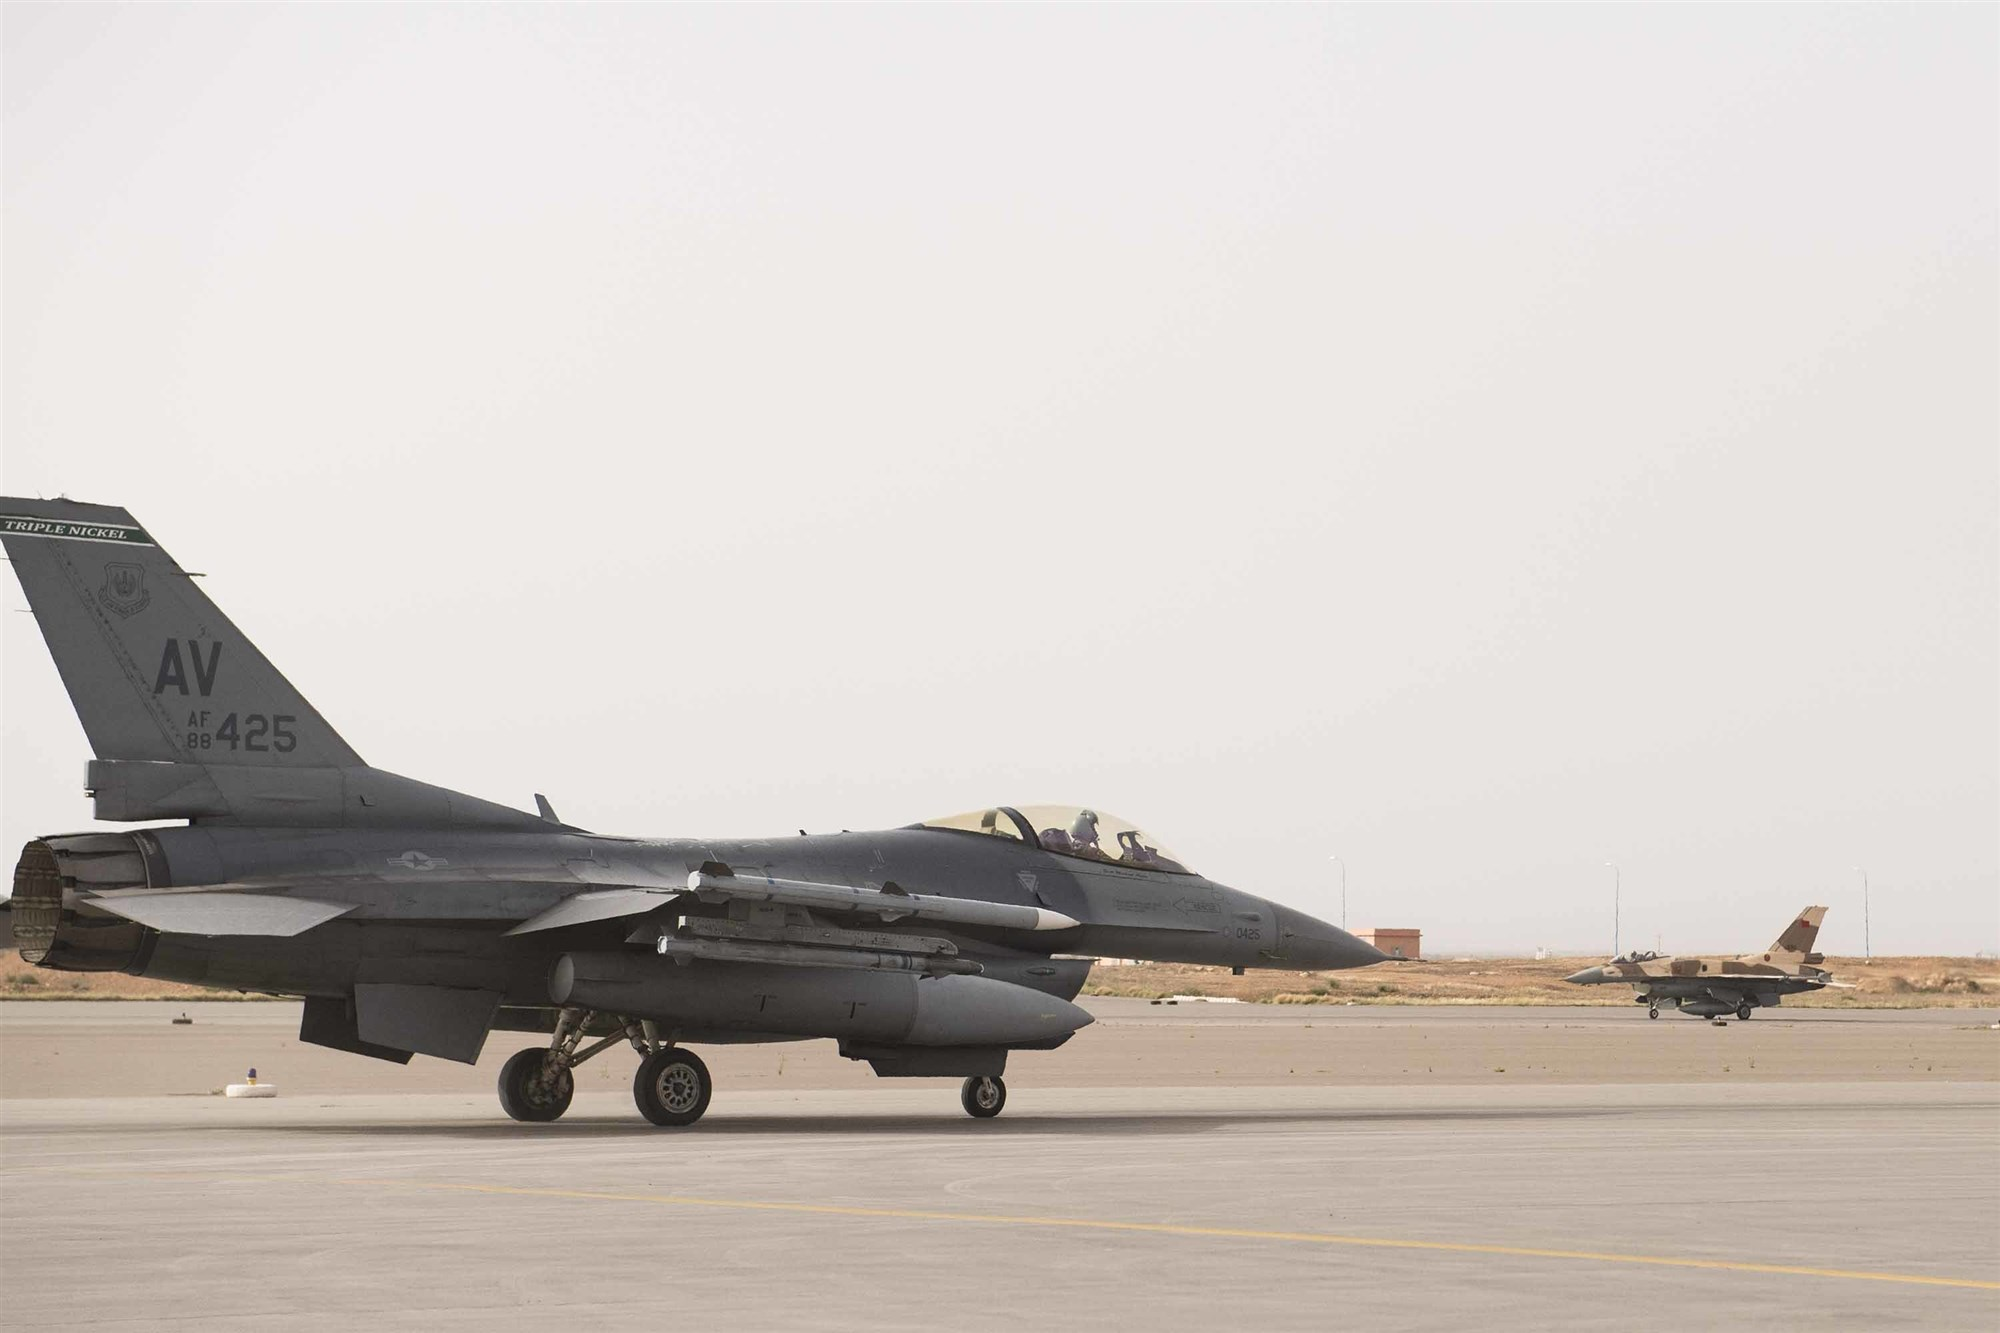 An F-16C Fighting Falcon from the 555th Expeditionary Fighter Squadron taxis during exercise African Lion 2019 at Ben Guerir Air Base, Morocco, March 25, 2019. Approximately 1,100 U.S. military personnel arrived in the Kingdom of Morocco to take part in the annual exercise. African Lion 2019 is a Chairman of the Joint Chiefs of Staff-sponsored, U.S. Africa Command-scheduled, U.S. Marine Corps Forces Europe and Africa-led, joint and combined exercise conducted in the Kingdom of Morocco with a spoke in Tunisia, and armed forces participants in from Canada, France, Senegal, Spain, and the United Kingdom. (U.S. Air Force photo by Staff Sgt. Ceaira Tinsley)